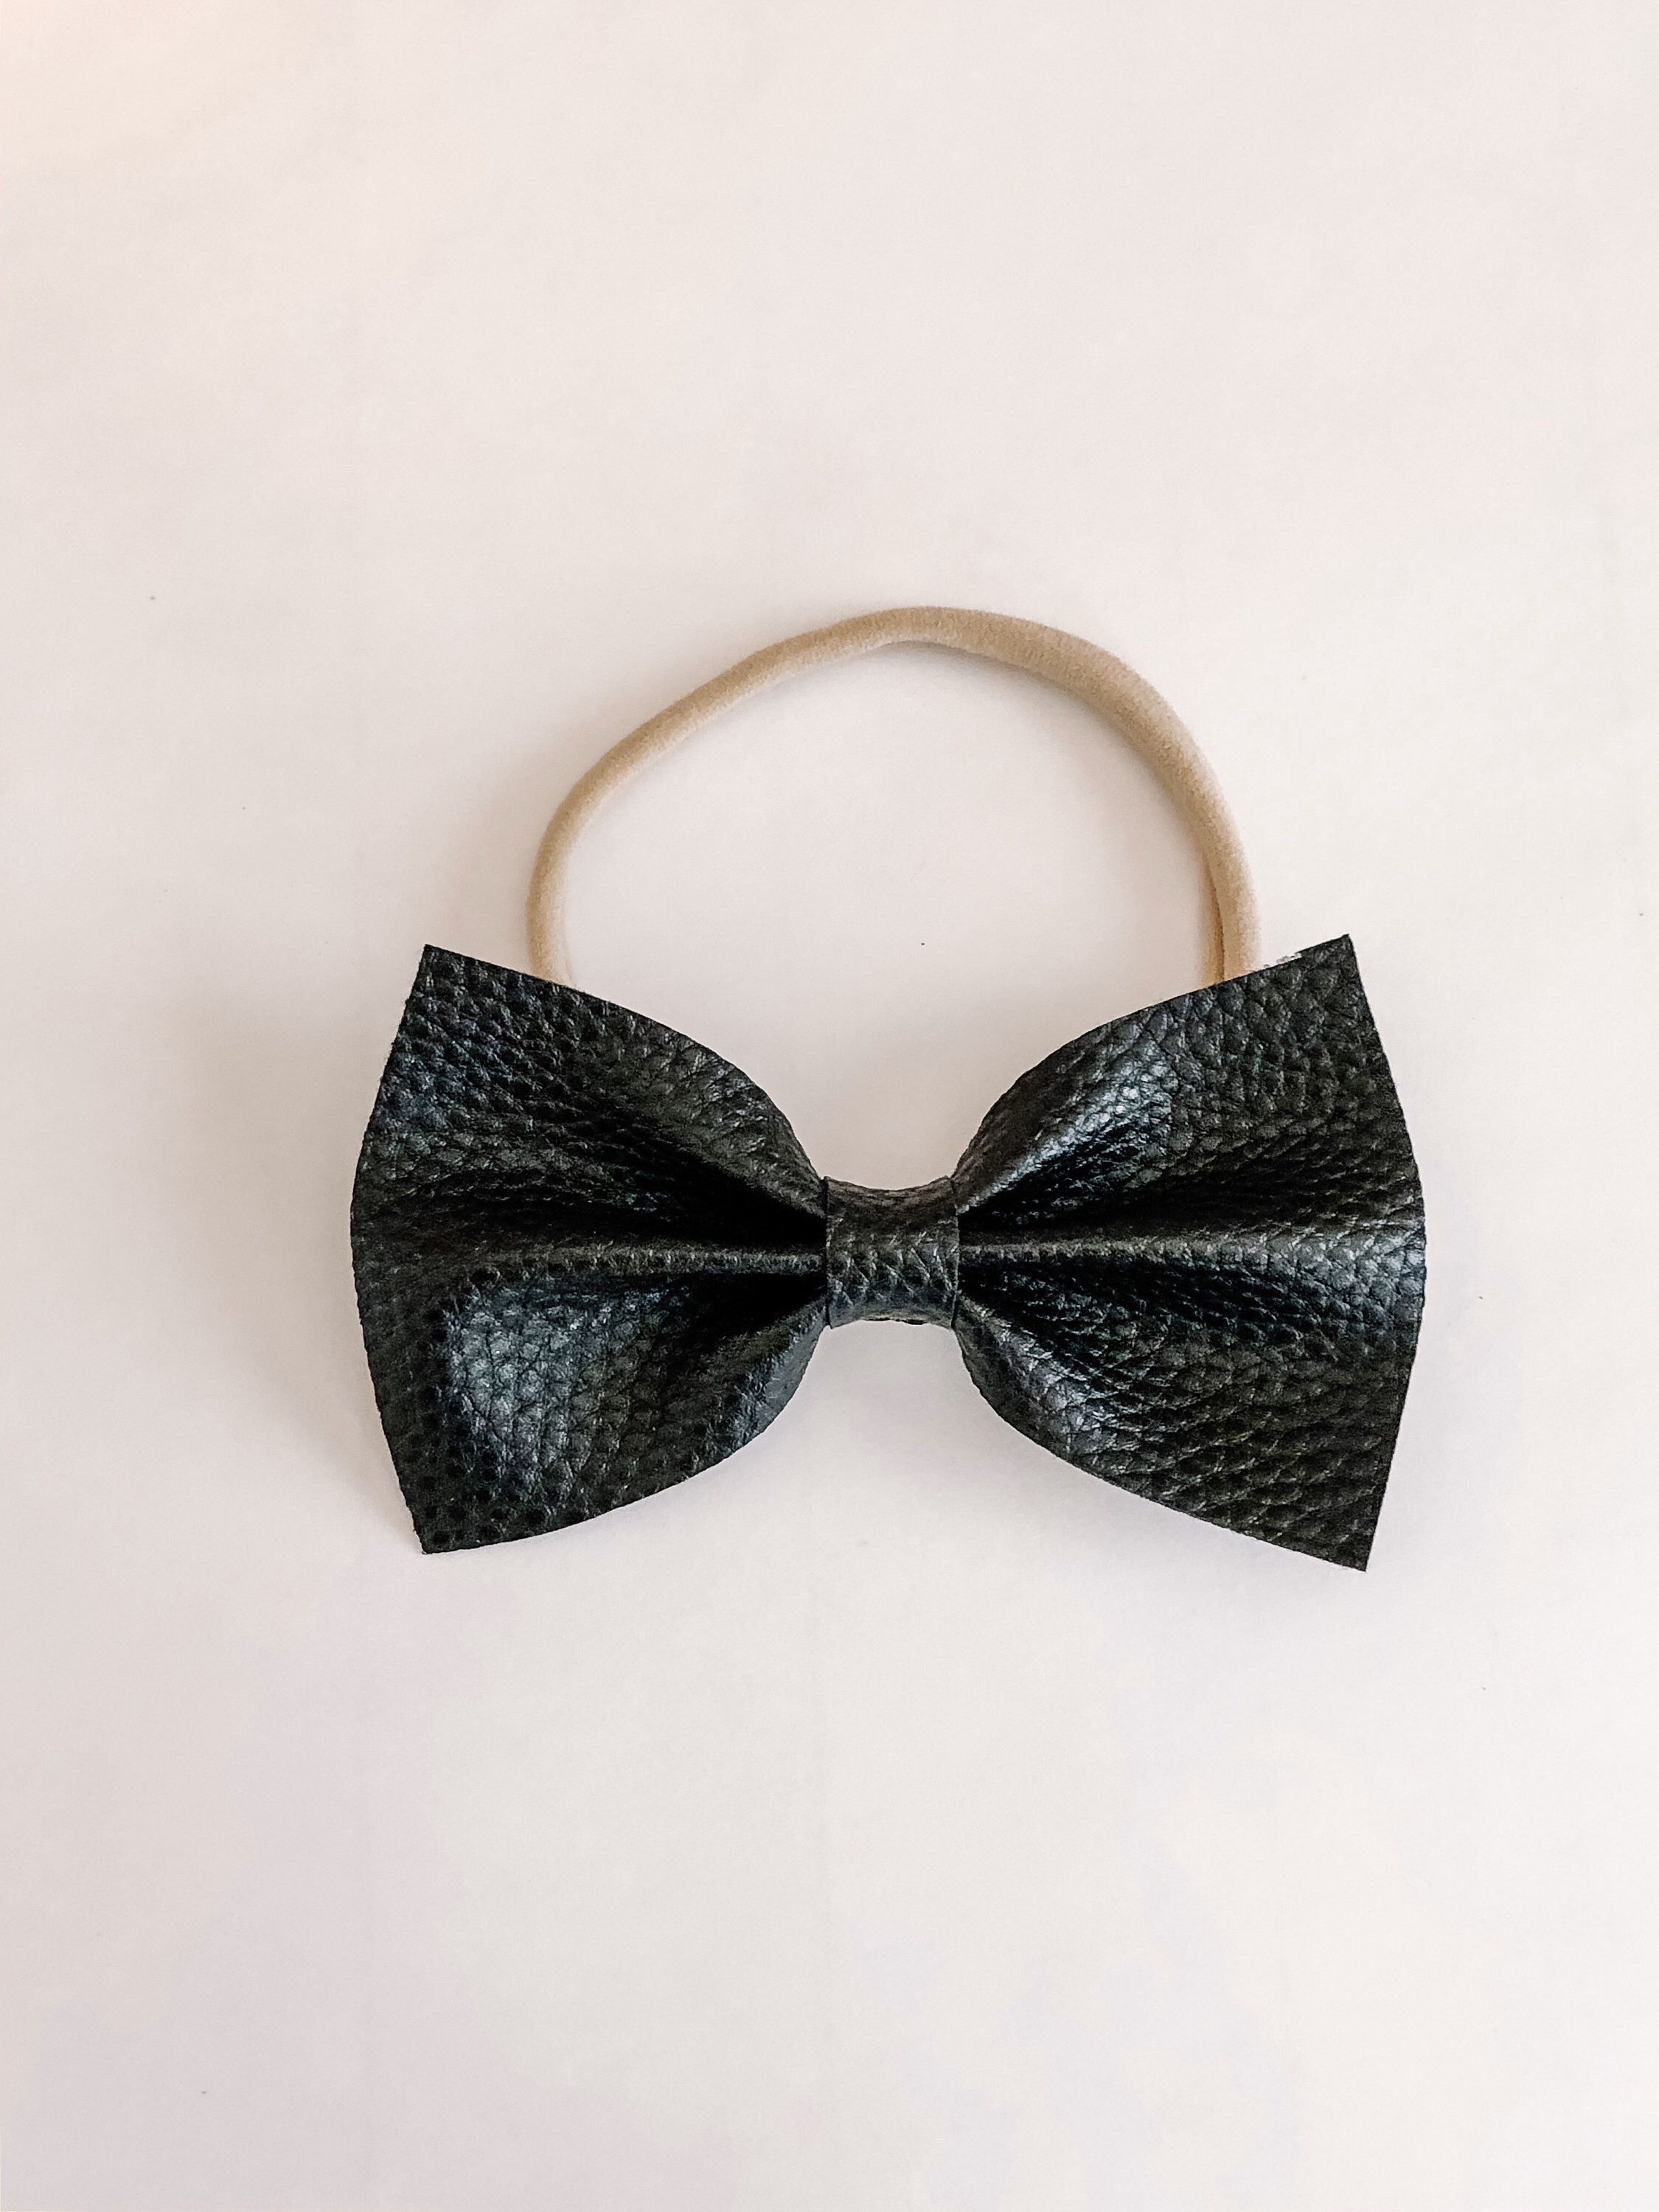 Black Hand Tied Baby or Toddler Bow Black Fabric Bows for Baby or Toddler on Nylon Headband or Clip Little Black Bow